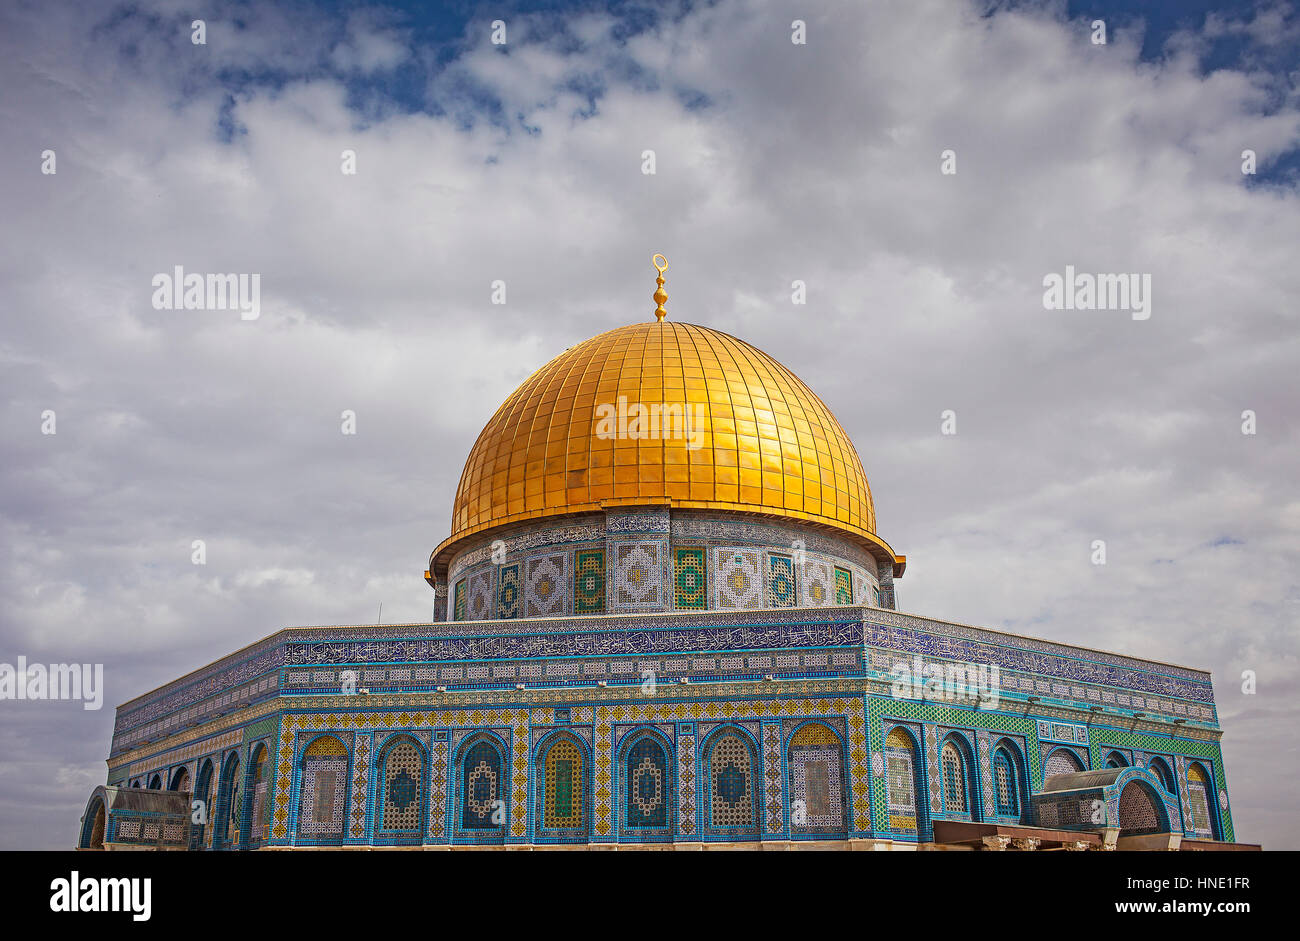 Dome of the Rock, Temple Mount (Har Ha Bayit), Jerusalem, Israel. - Stock Image